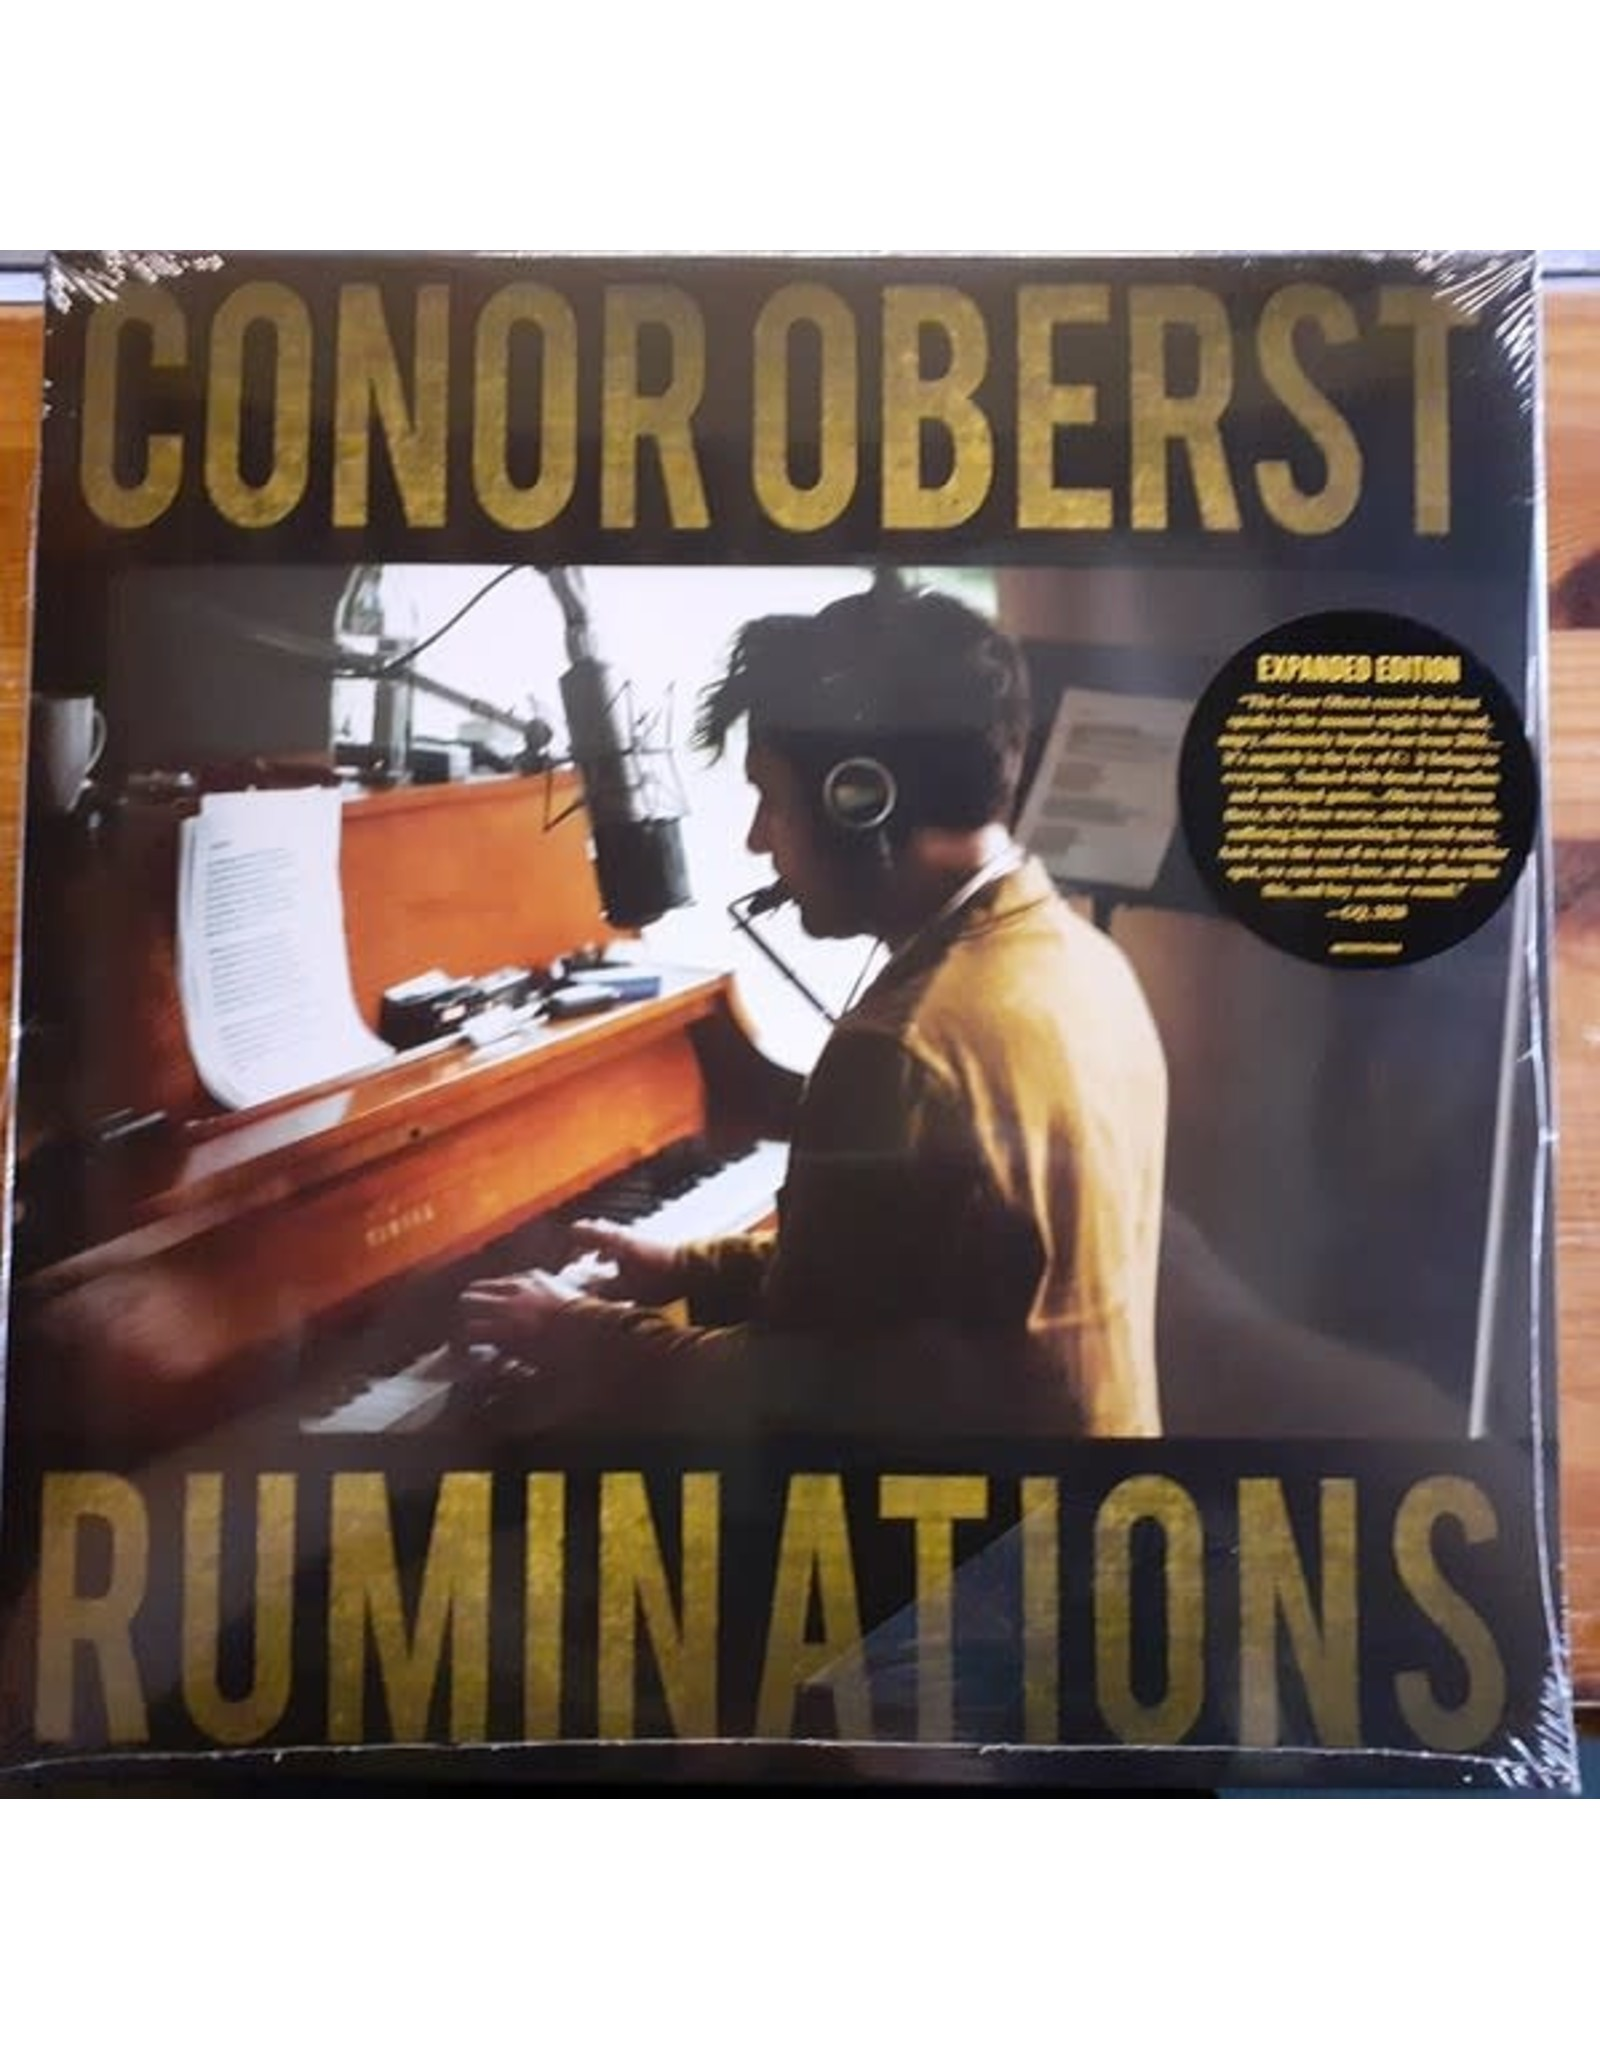 Oberst, Conor - Ruminations: Expanded Edition LP (RSD)